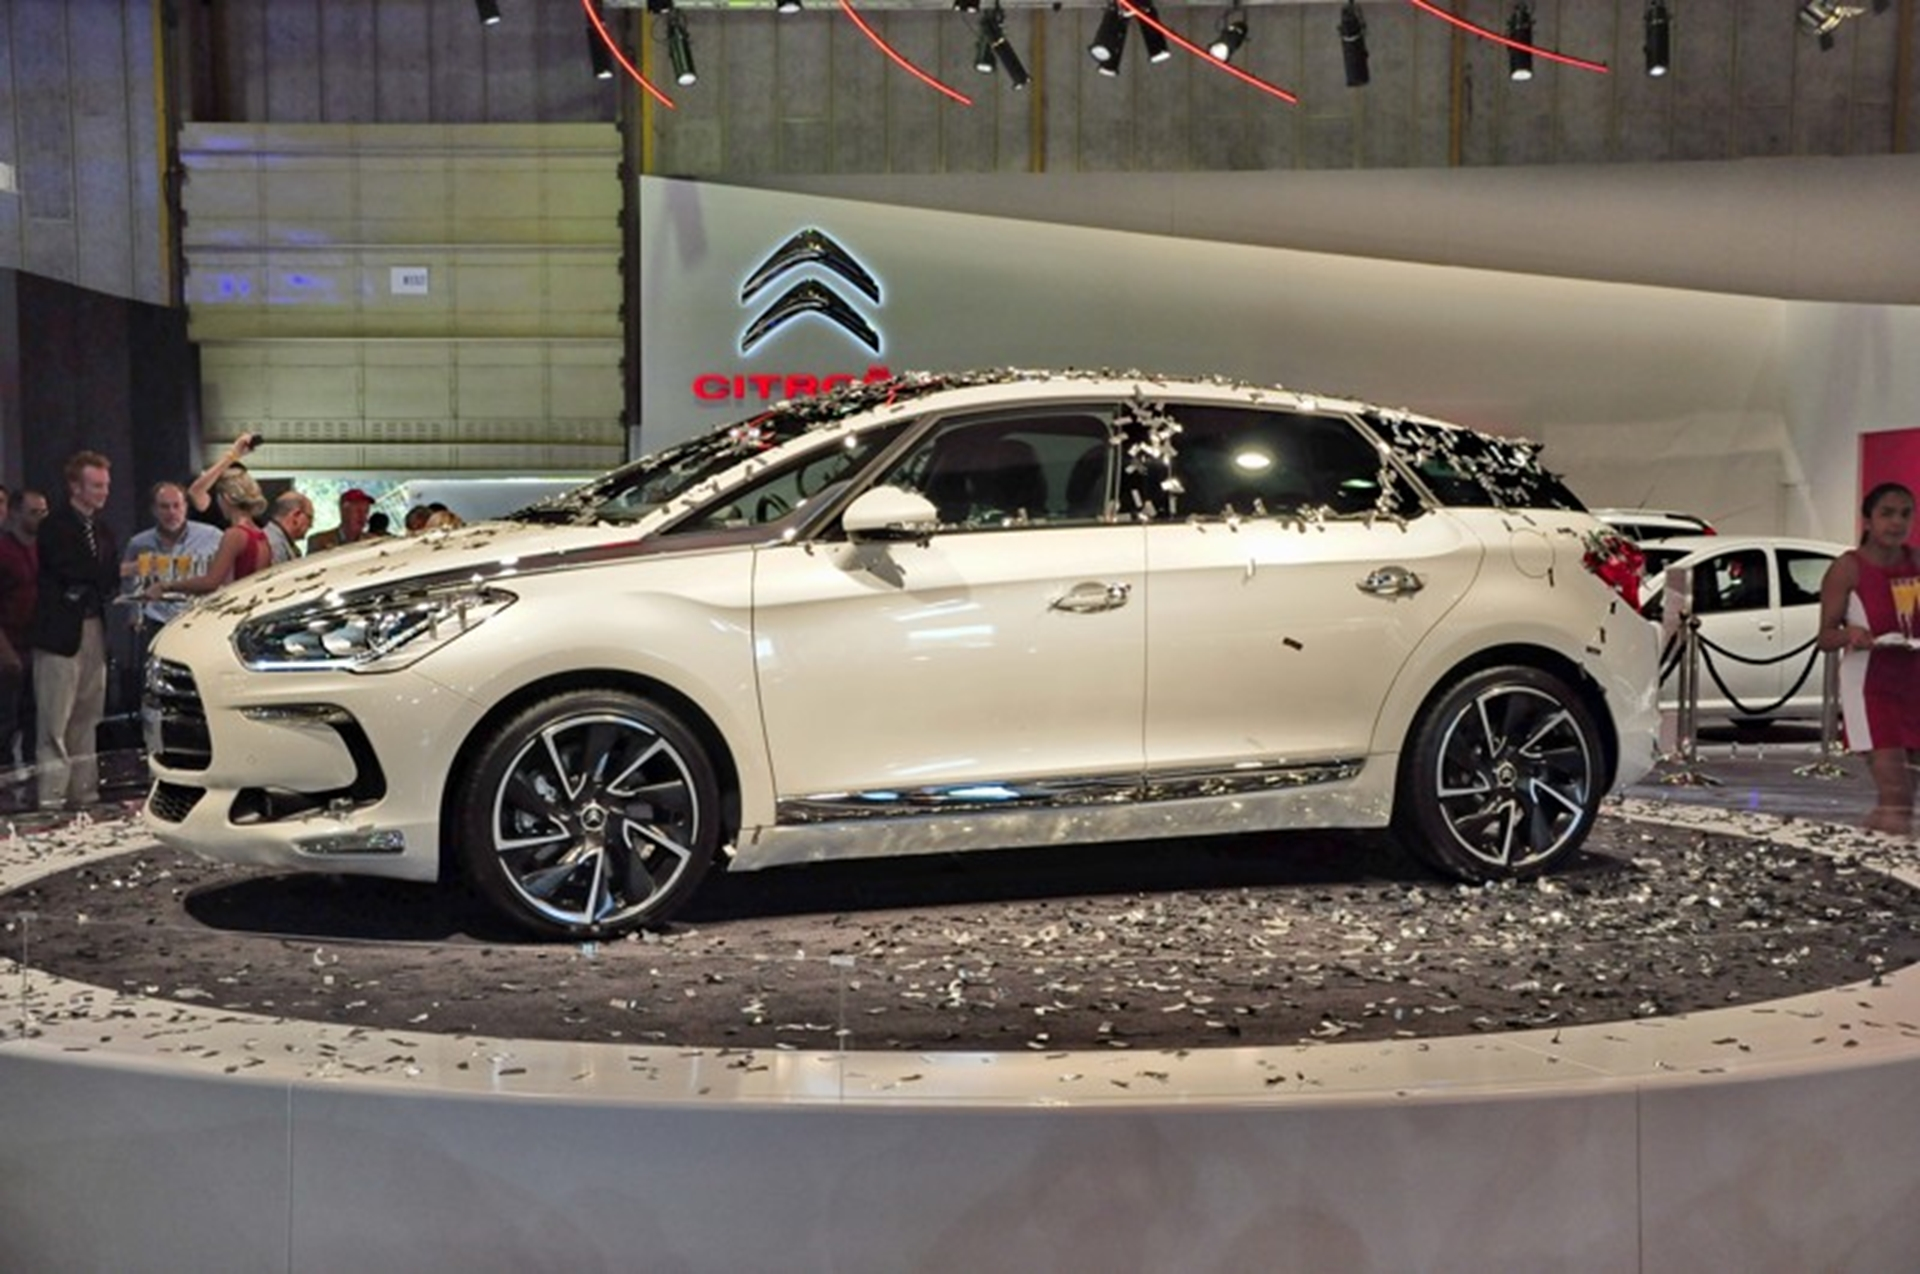 Citroen 2011 Johannesburg International Motor Show